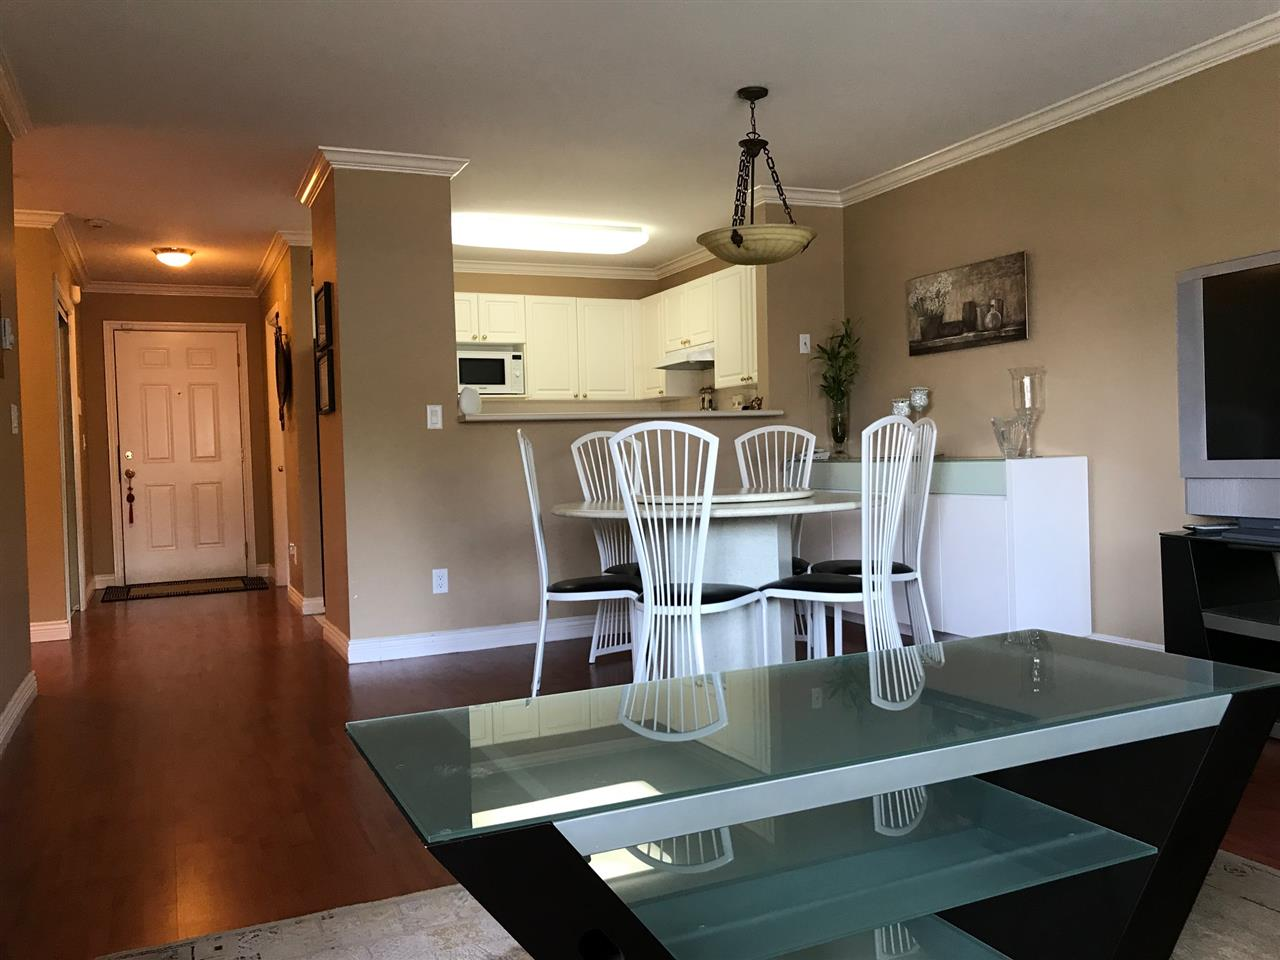 Condo Apartment at 305 13680 84 AVENUE, Unit 305, Surrey, British Columbia. Image 10